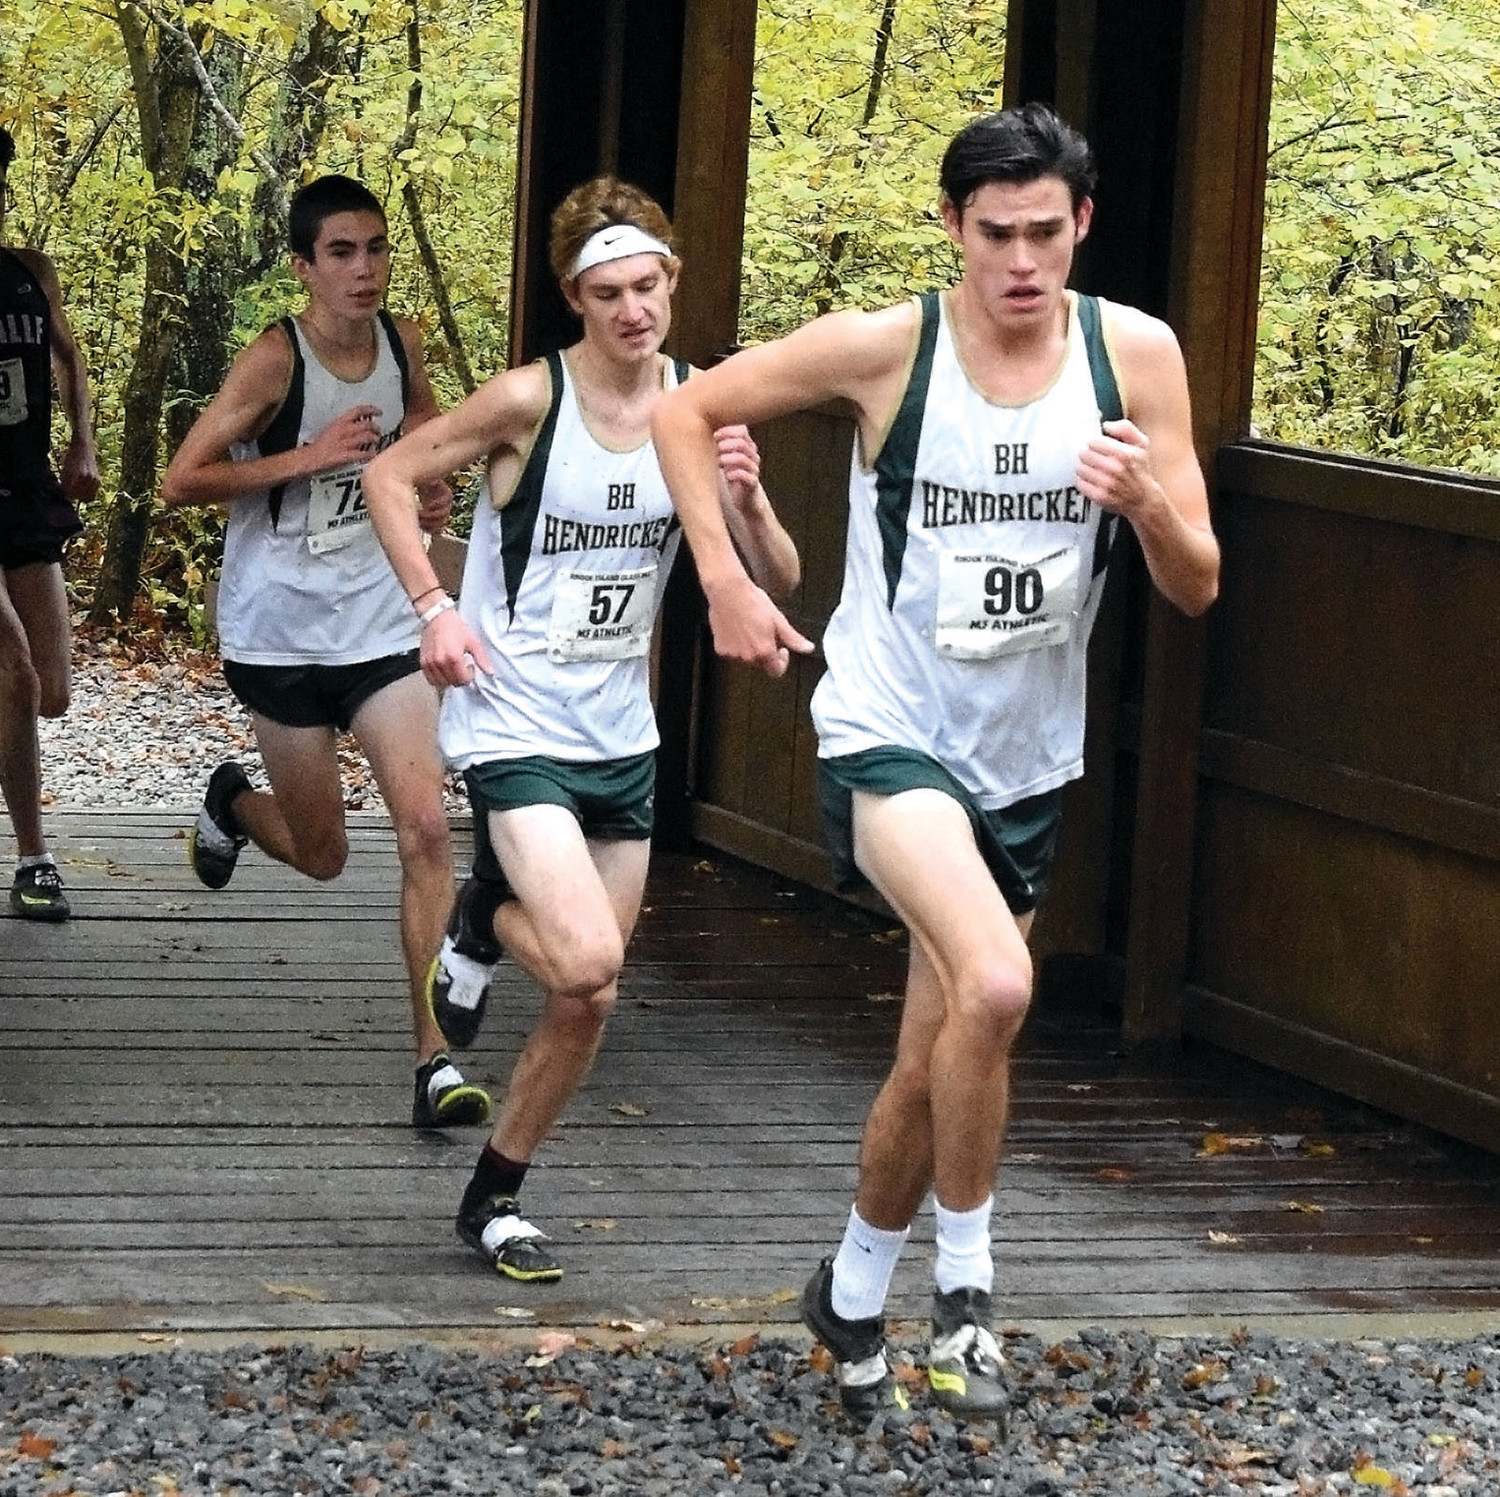 ON THE RUN: Bishop Hendricken's Aidan Tierney, Luke Henseler and Jack McMahon run on the course.